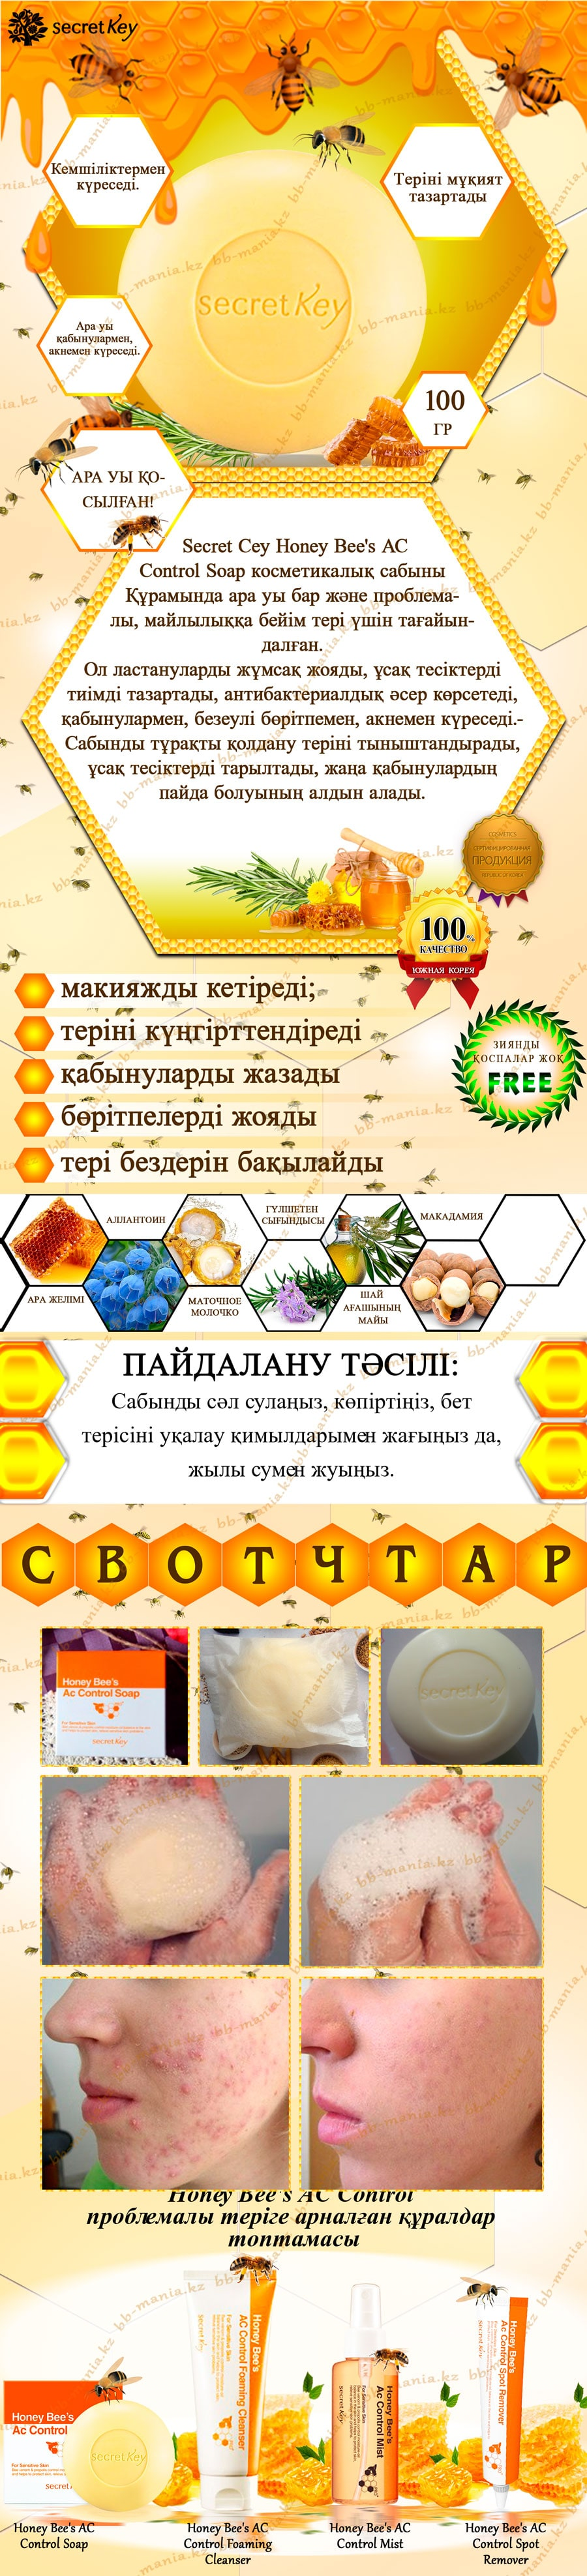 Honey-Bee's-AC-Control-Soap-[Secret-Key]-кз-min